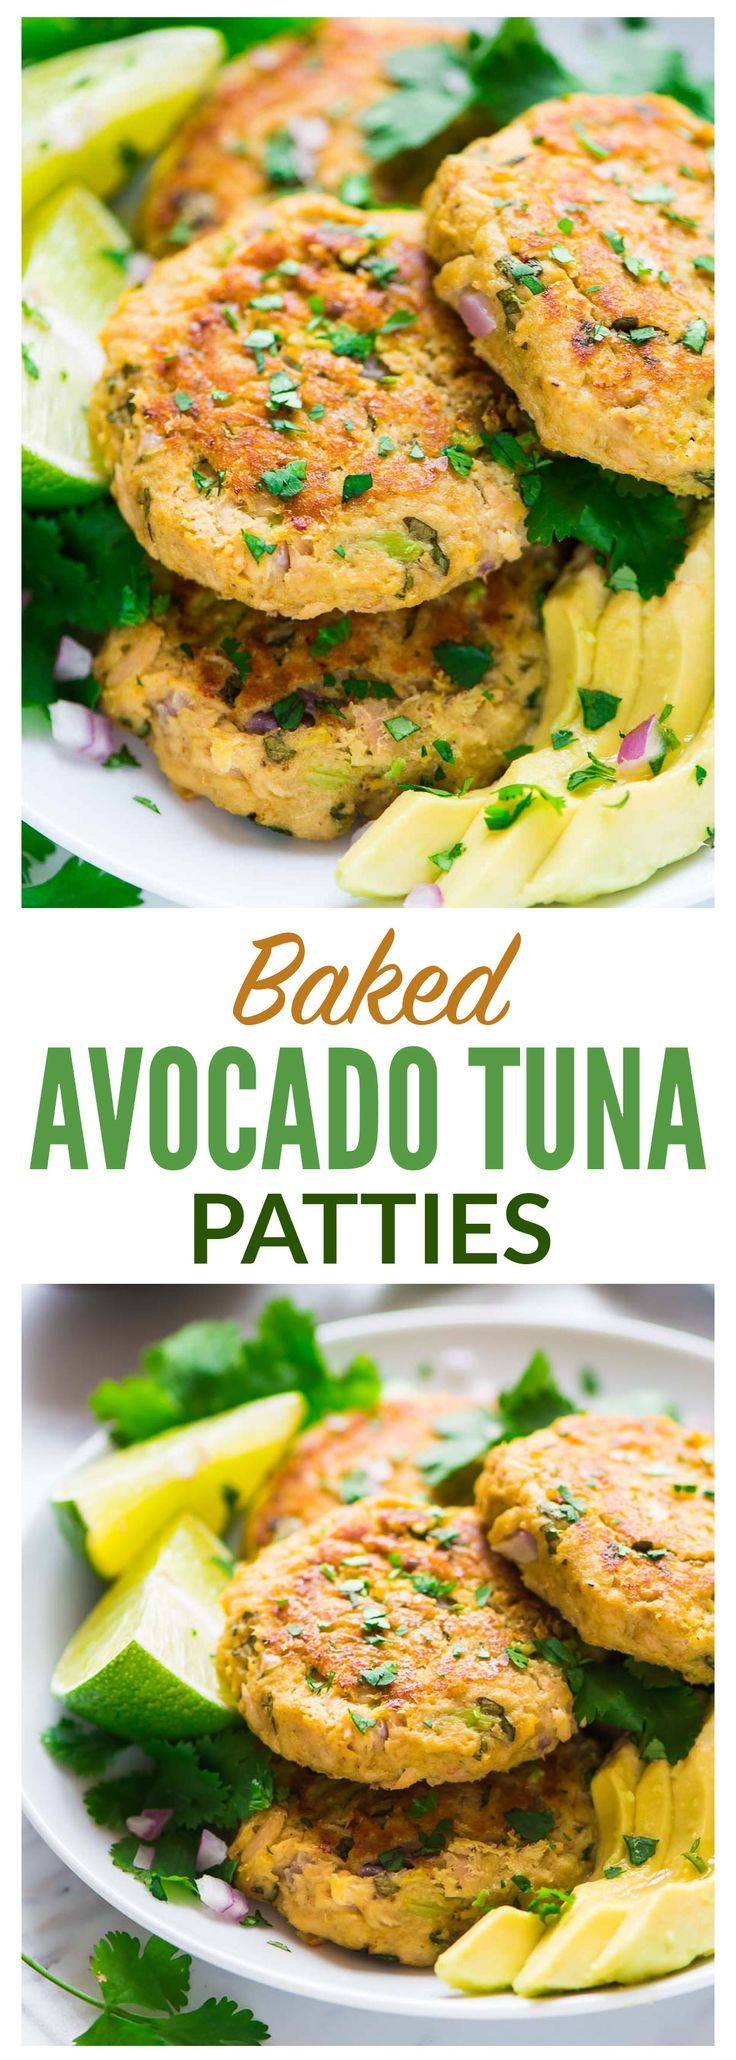 Yes, canned tuna can be a good source of omega-3 fats, but how much omega-3s are contained in the can of tuna you purchase can vary considerably.